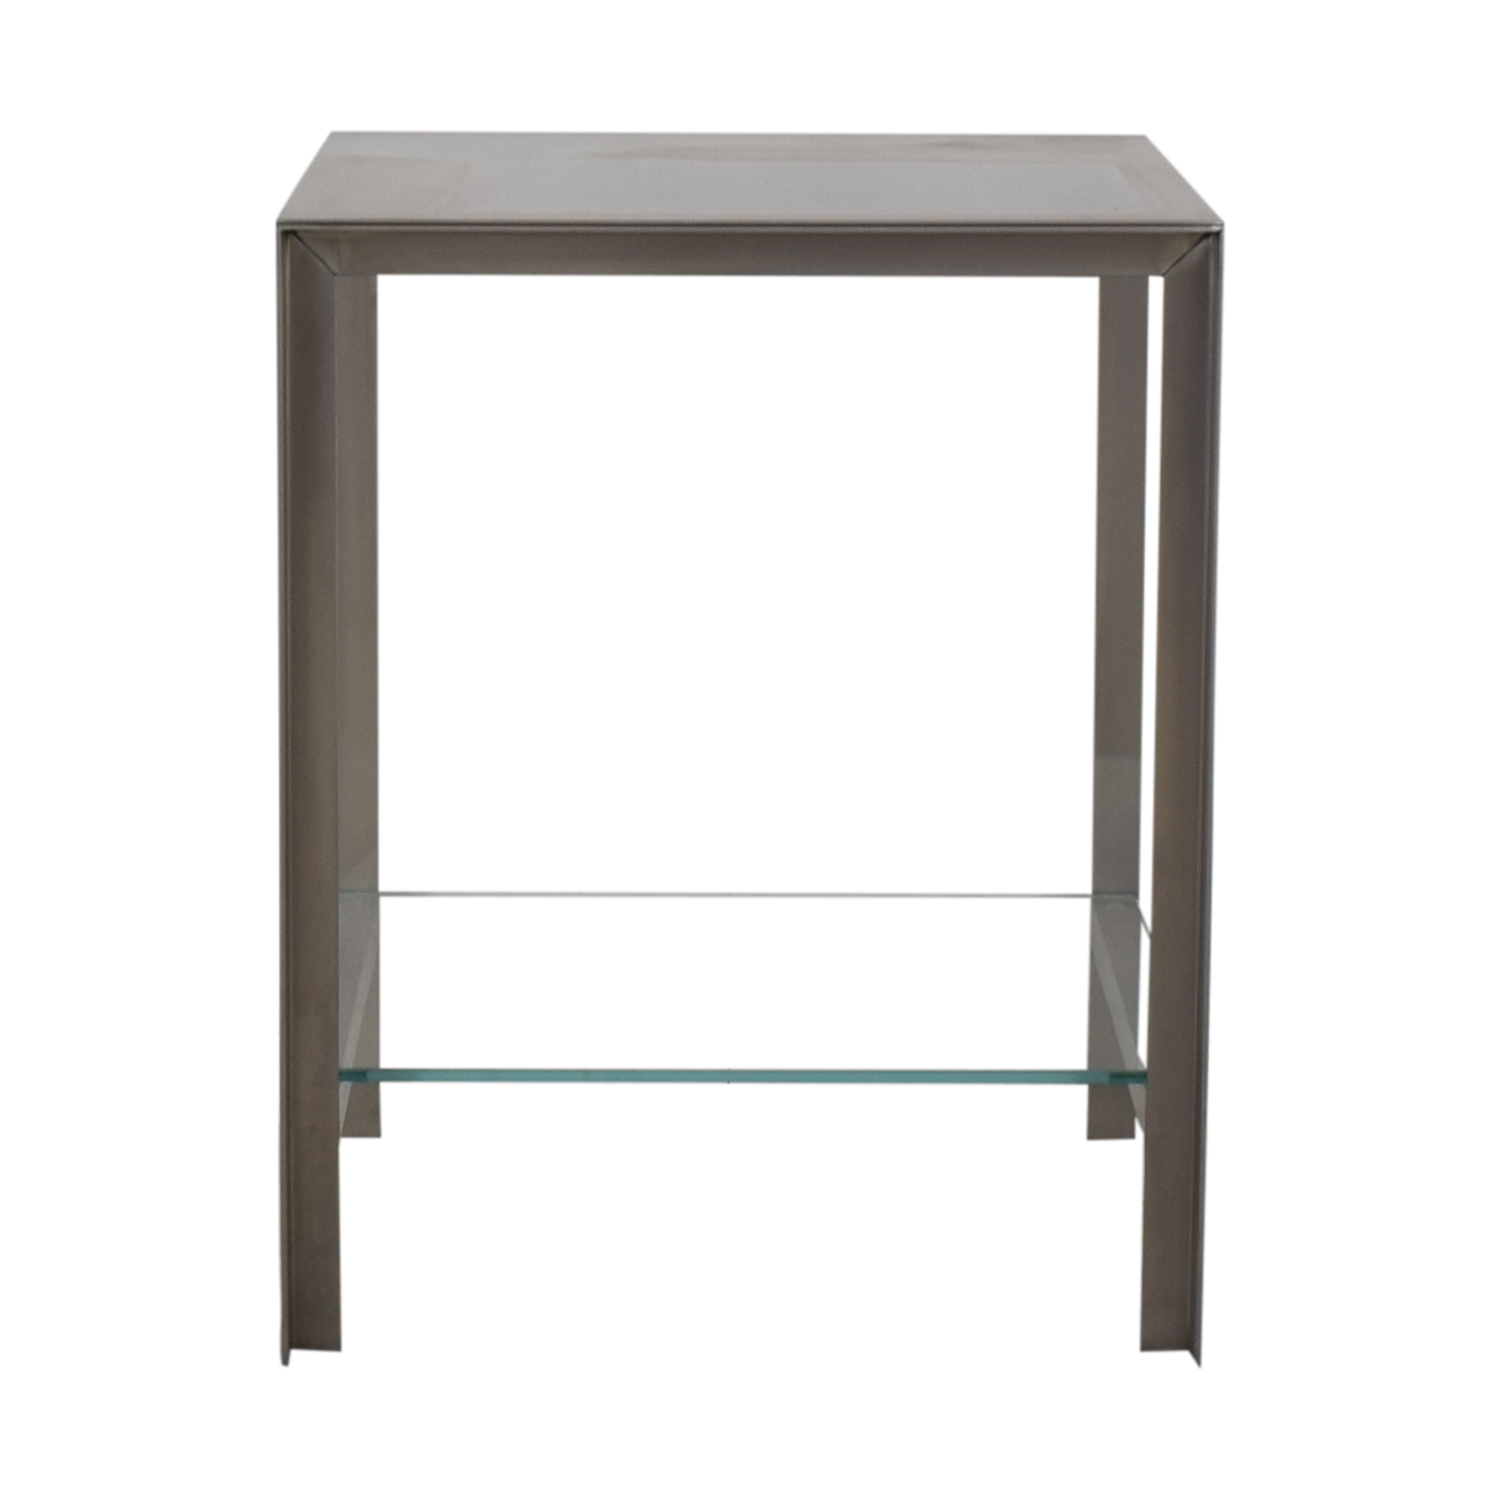 Desiron Desiron Chrome and Glass Square Console on sale